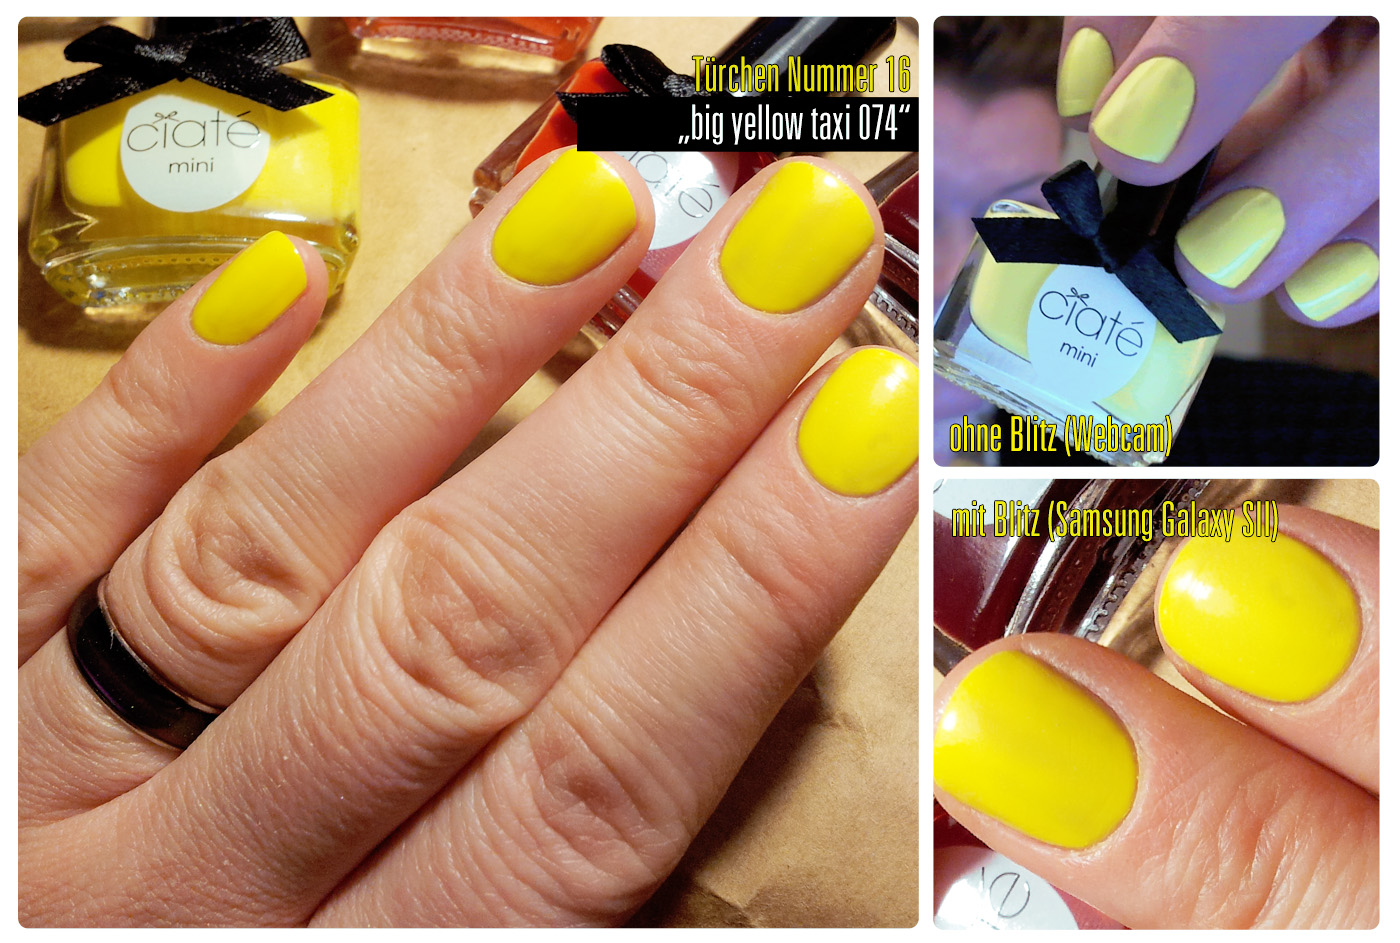 "Ciaté Adventskalender Mini Mani Month Nagellacke | Türchen Nummer 16: ""big yellow taxi 074"""